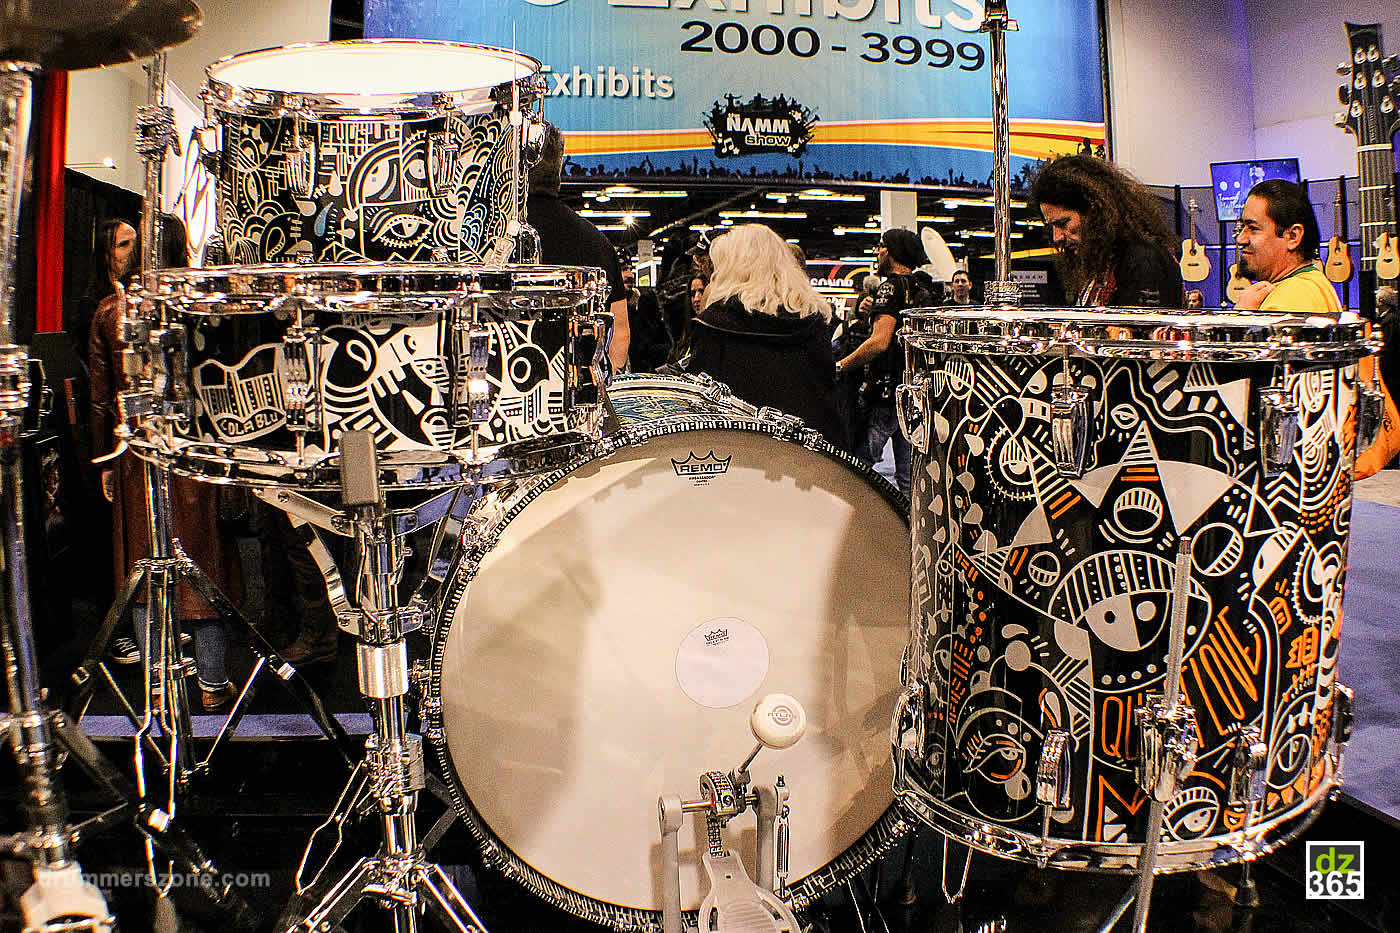 drummerszone news questlove 39 s tonight show drum set with lola blu artwork. Black Bedroom Furniture Sets. Home Design Ideas